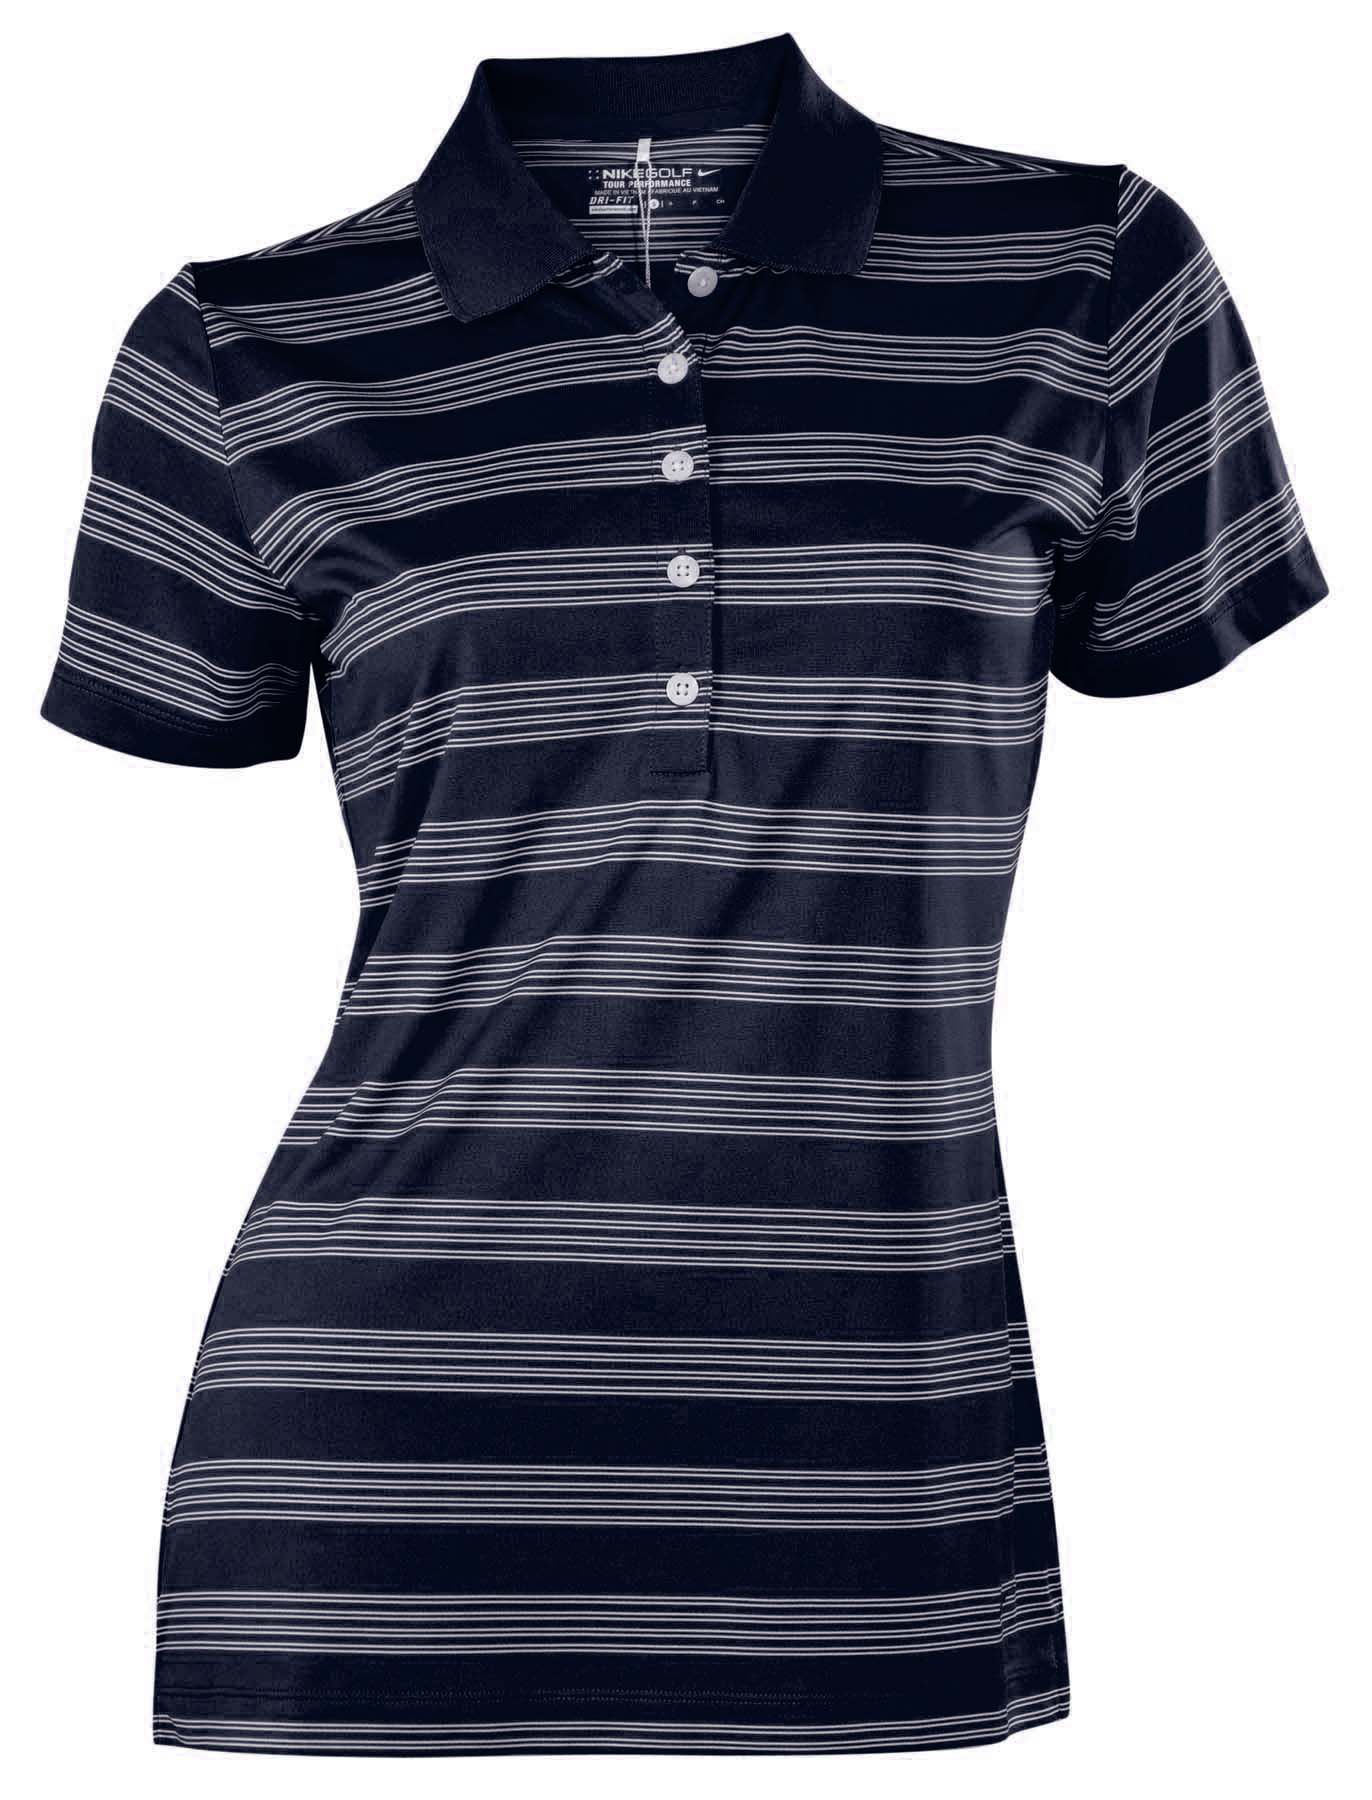 Nike women 39 s dri fit tech striped golf polo shirt ebay for Women s dri fit golf shirts